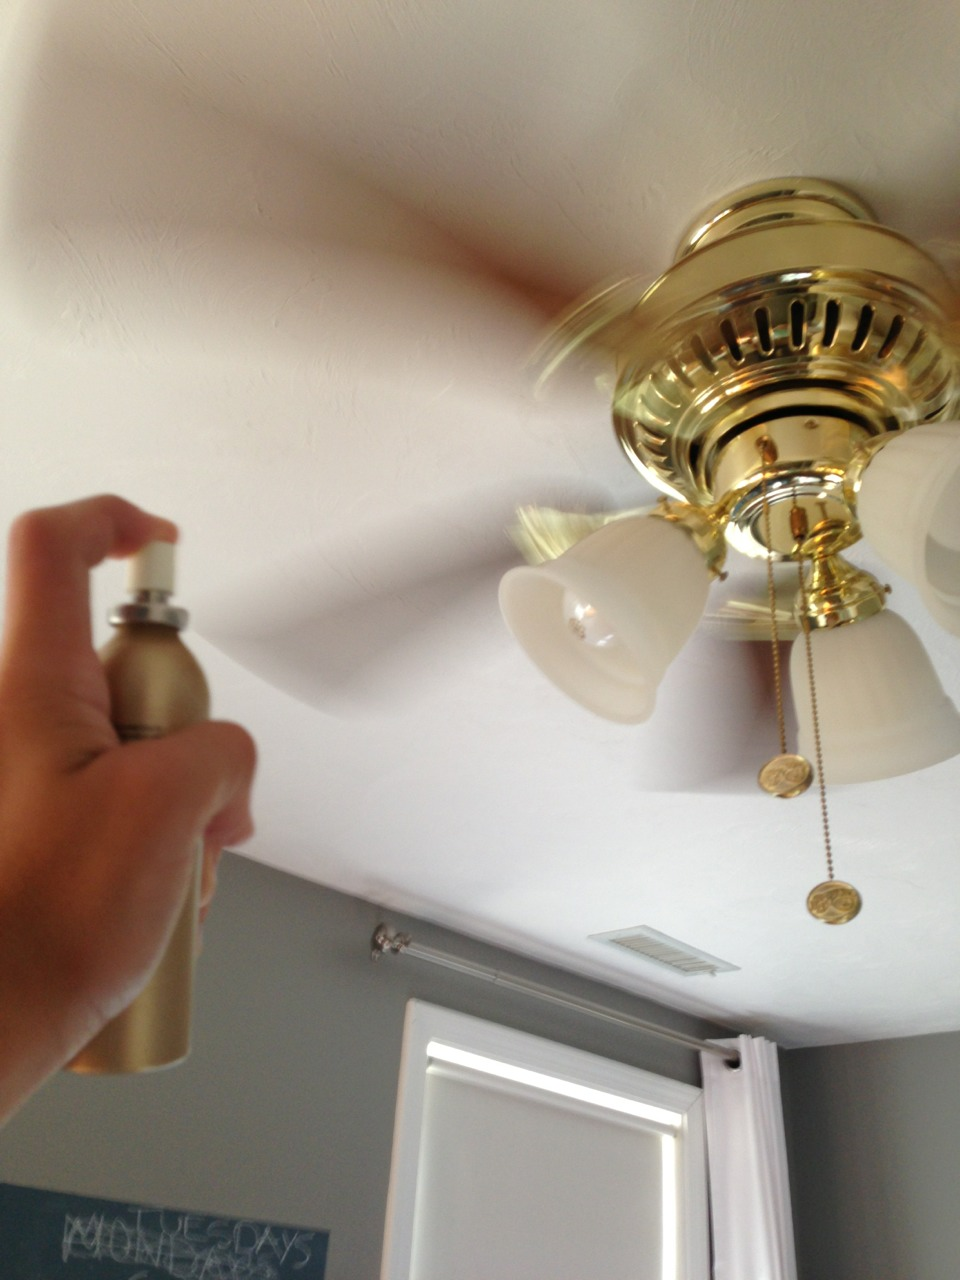 When Spraying Any Odor Eliminator In A Room Spray The Spray Into A Fan Musely